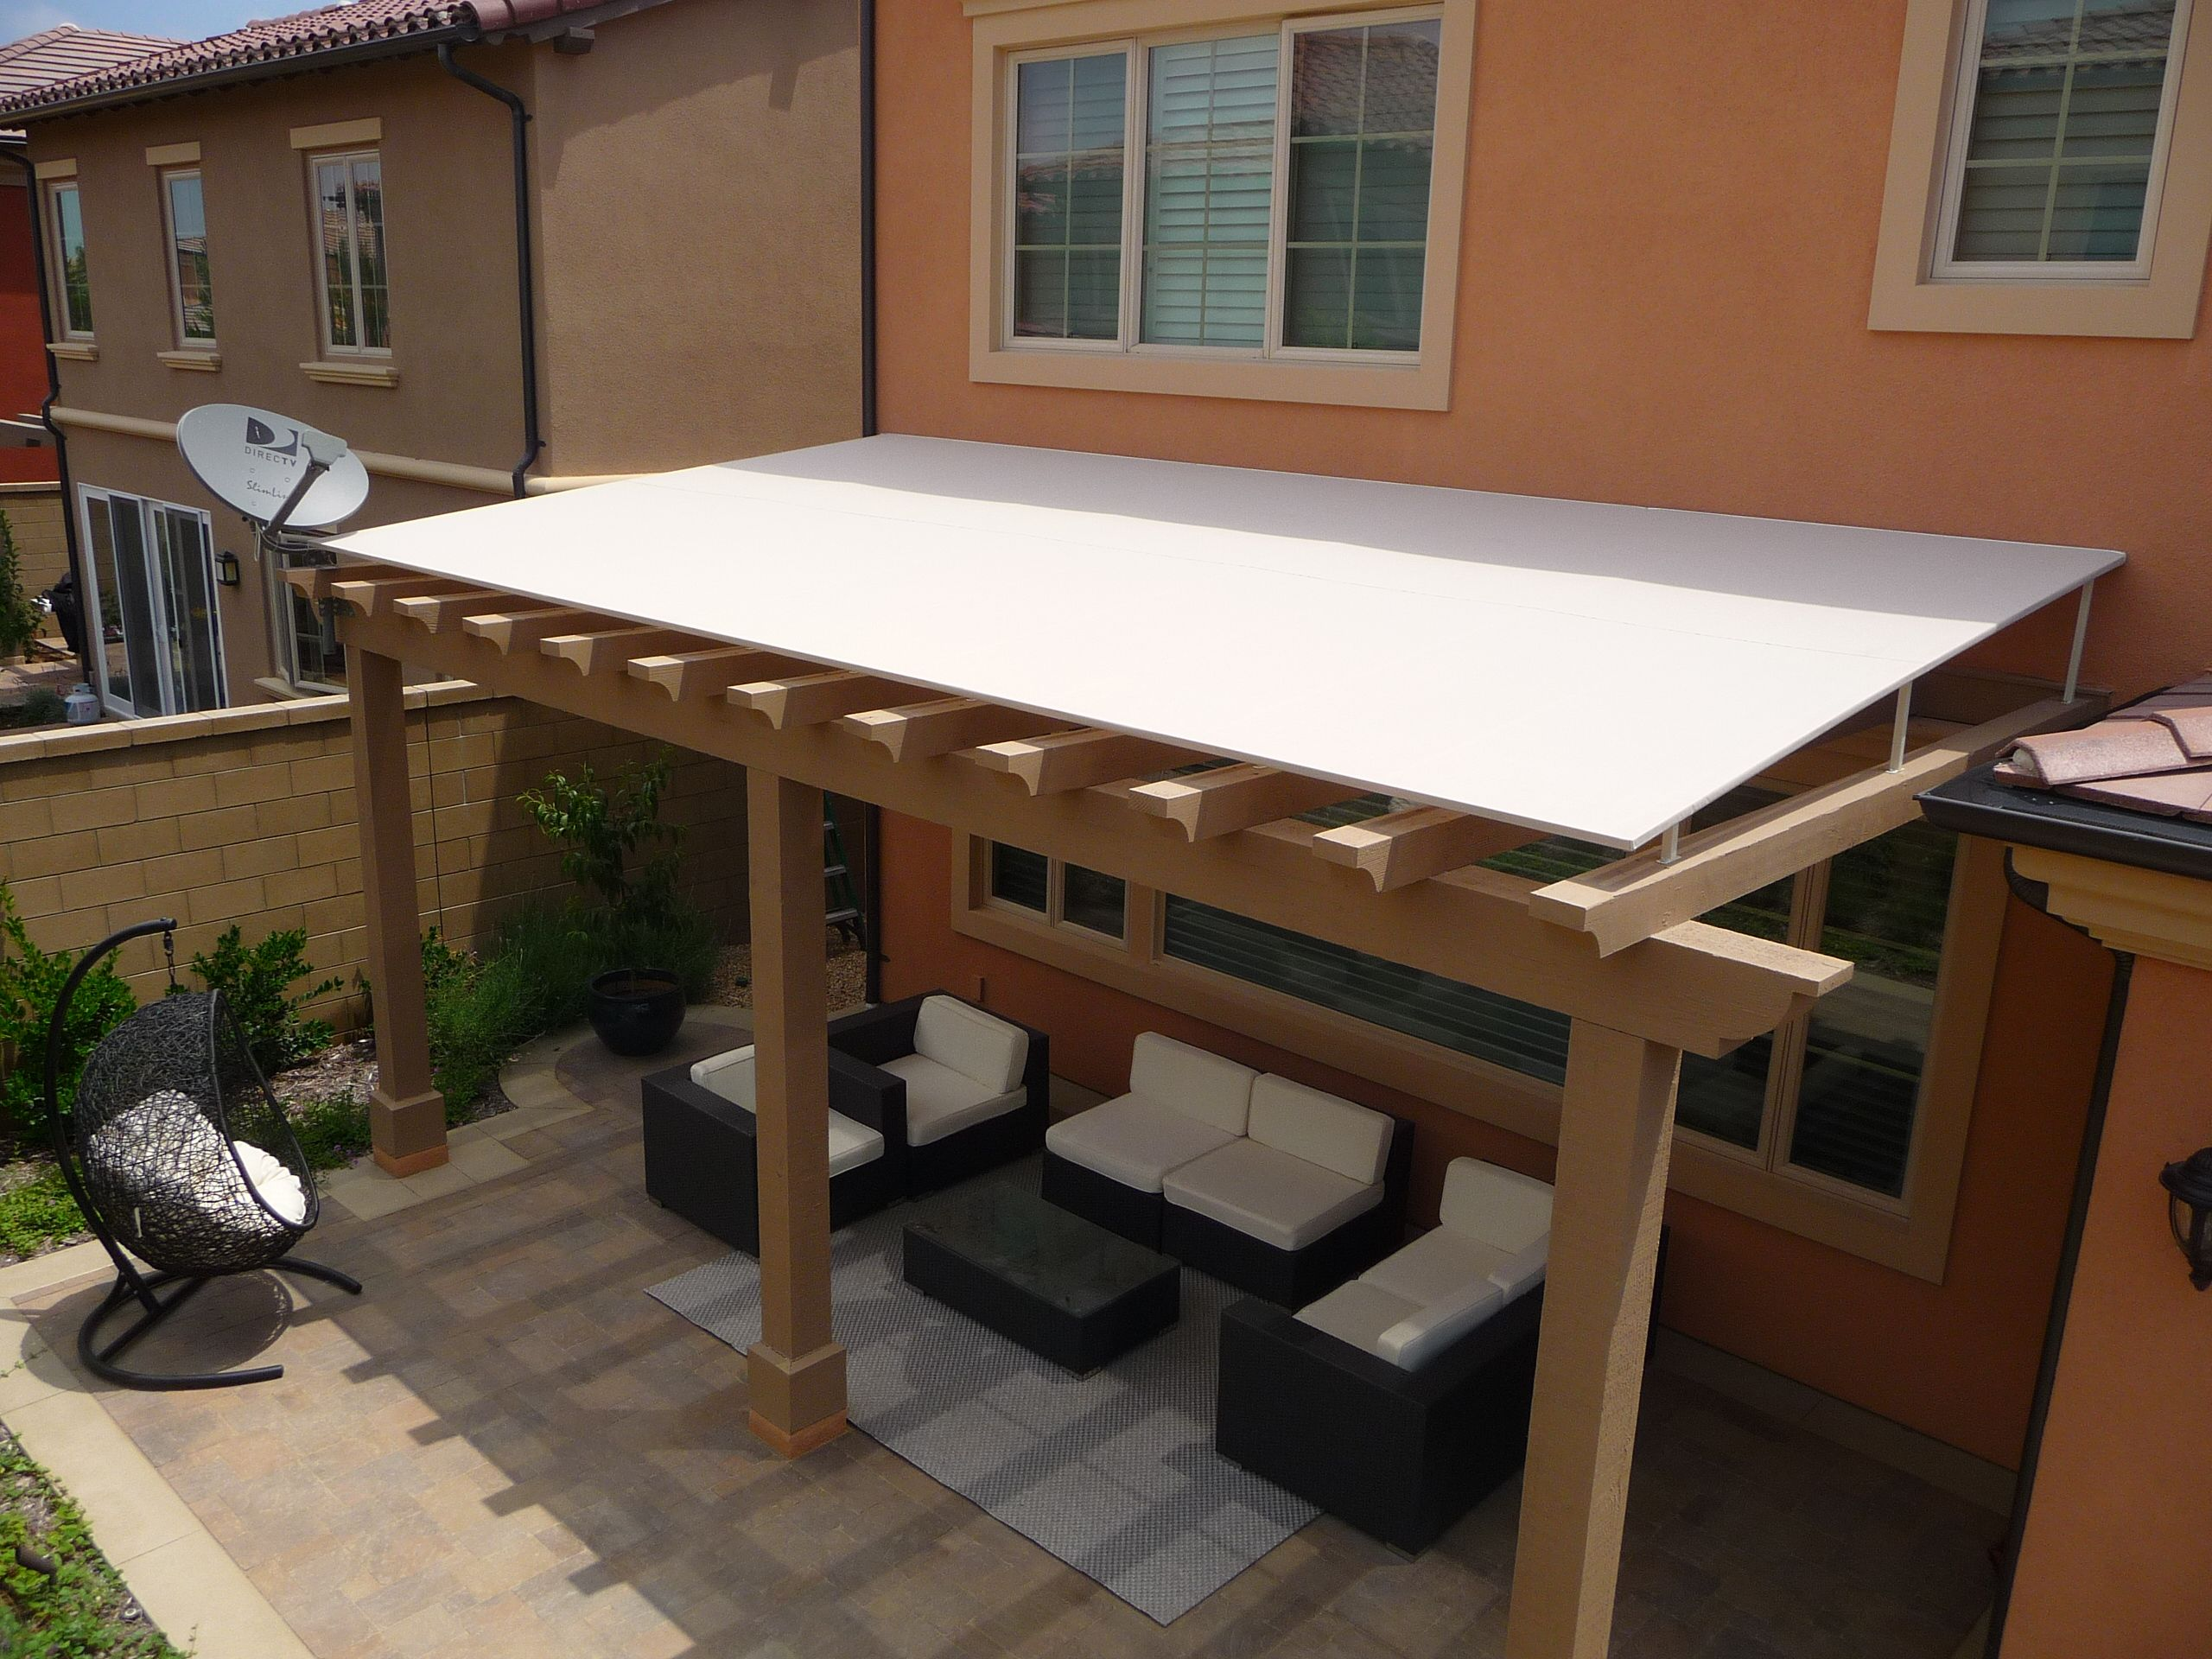 Sensational Sophisticated Wood Trellis Pergola Roofing With Wood Awning Largest Home Design Picture Inspirations Pitcheantrous